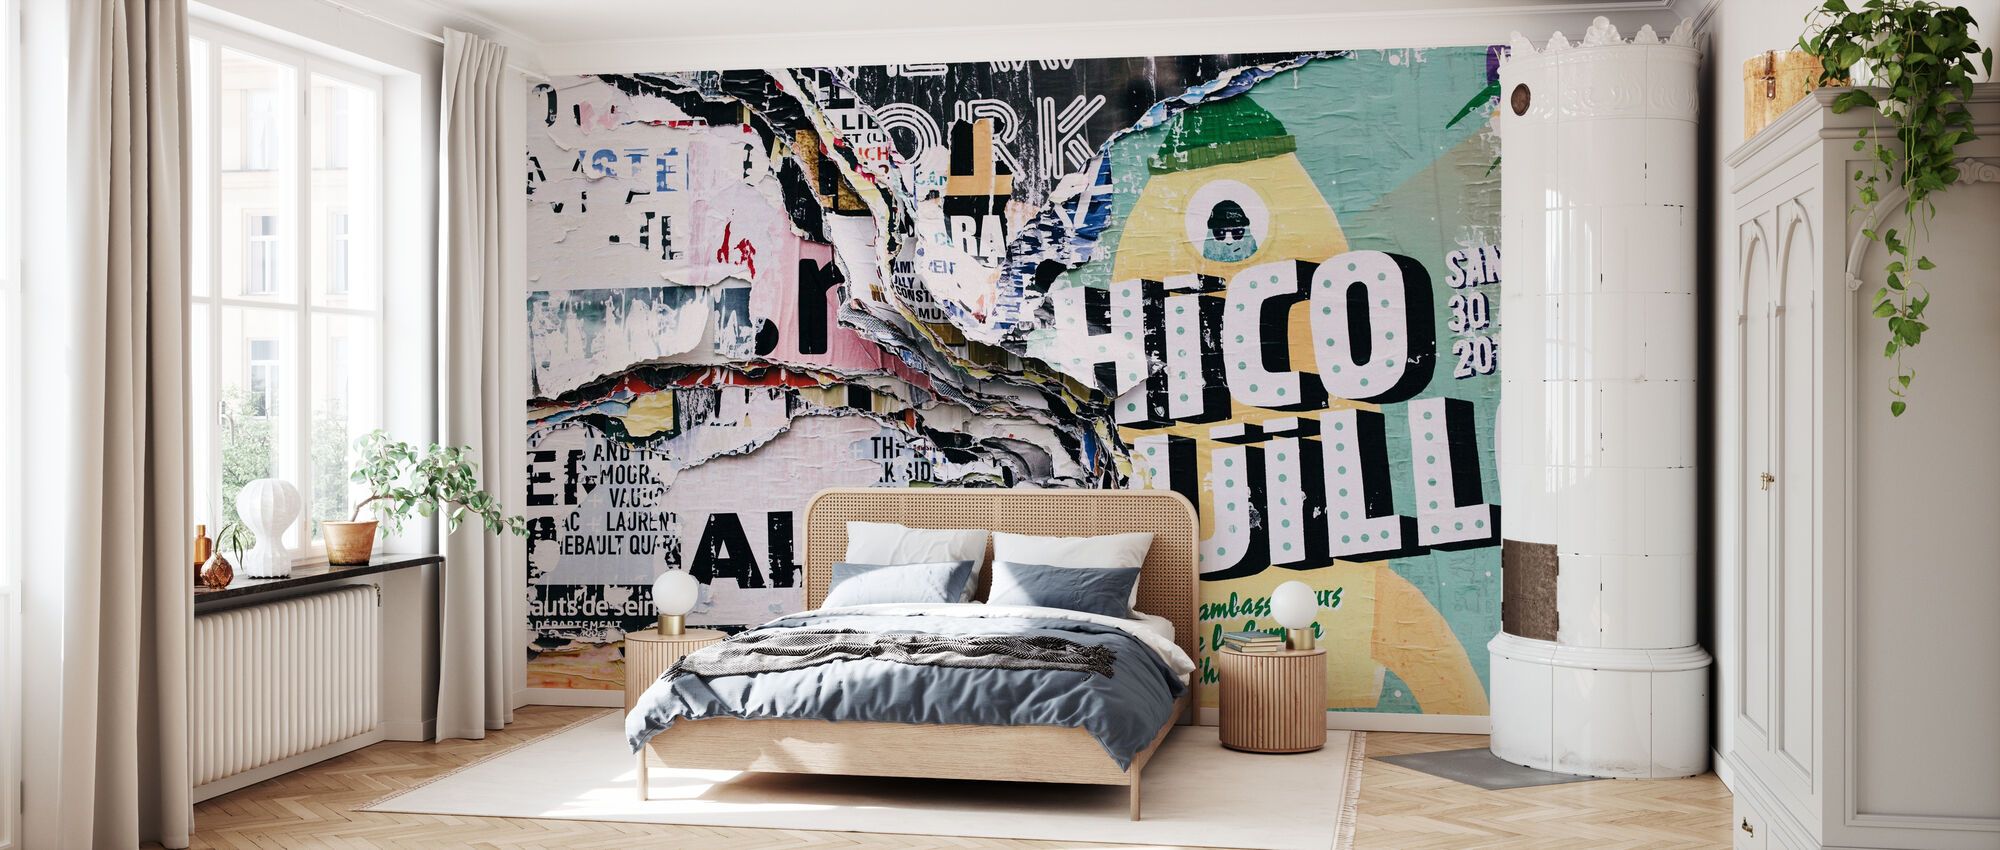 Layered Graffiti - Wallpaper - Bedroom